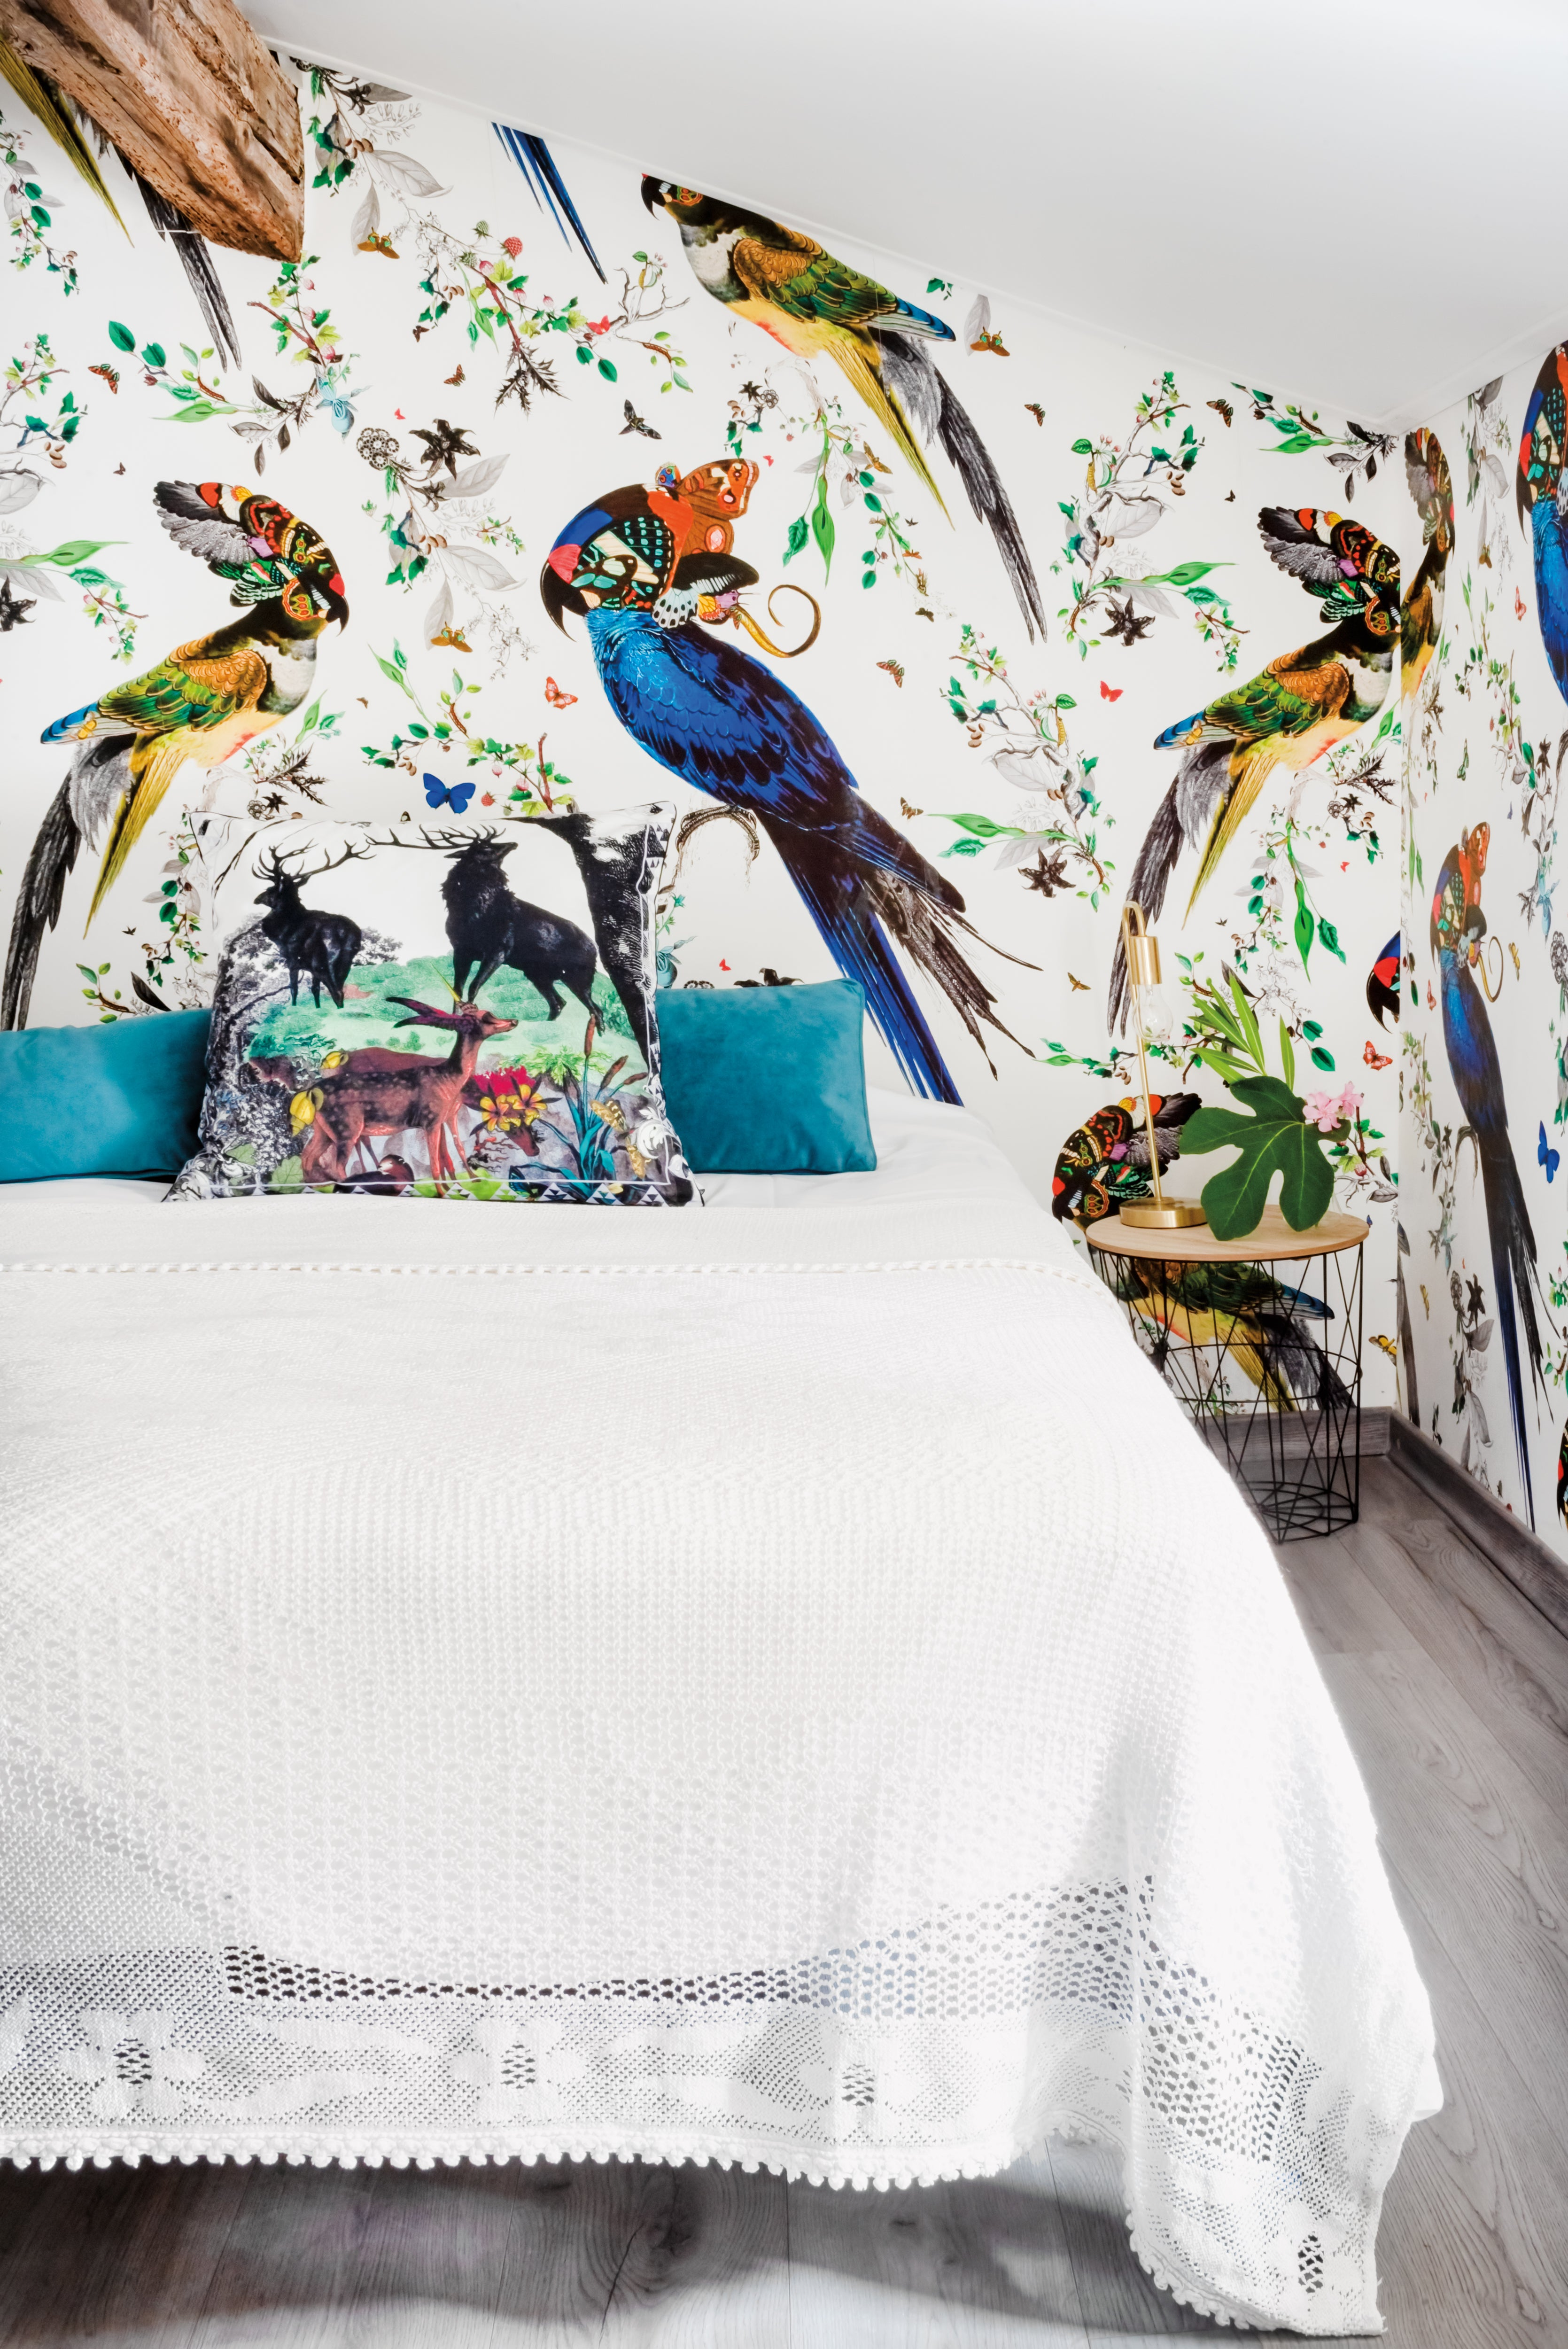 Kristjana William's Home Tour is the Picture of Wonder and Whimsy